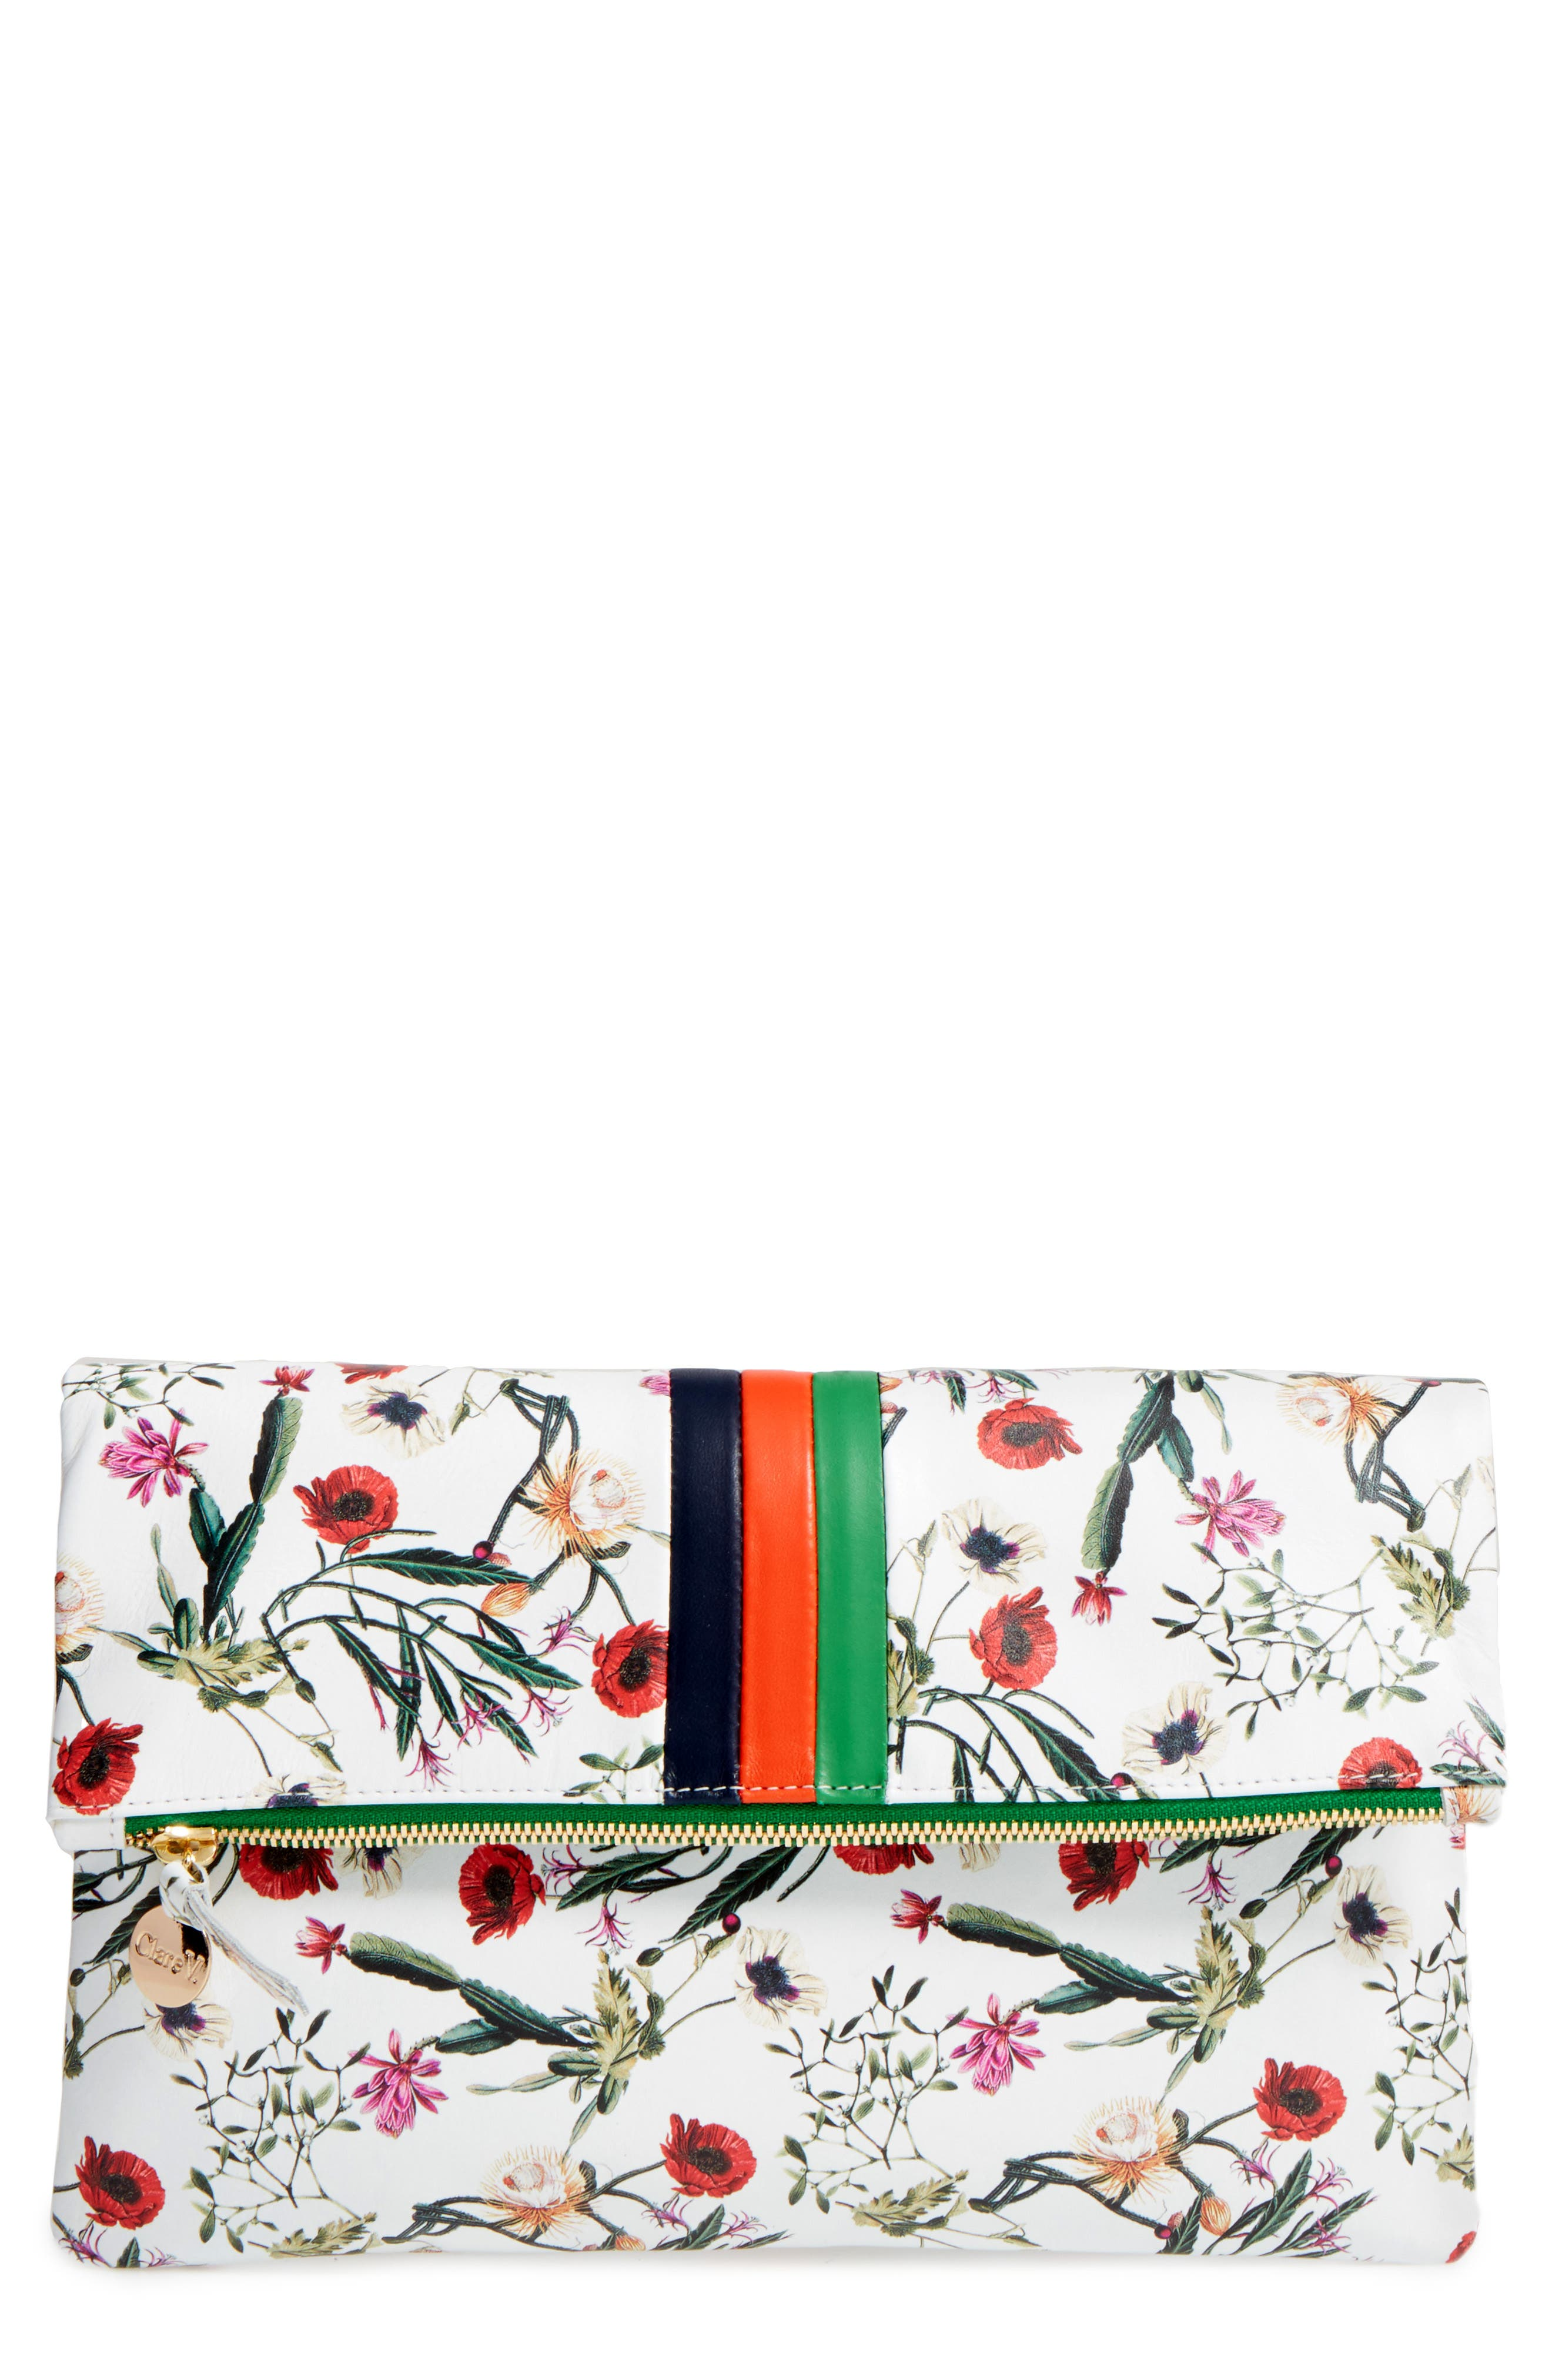 Clare V. Floral Leather Foldover Clutch